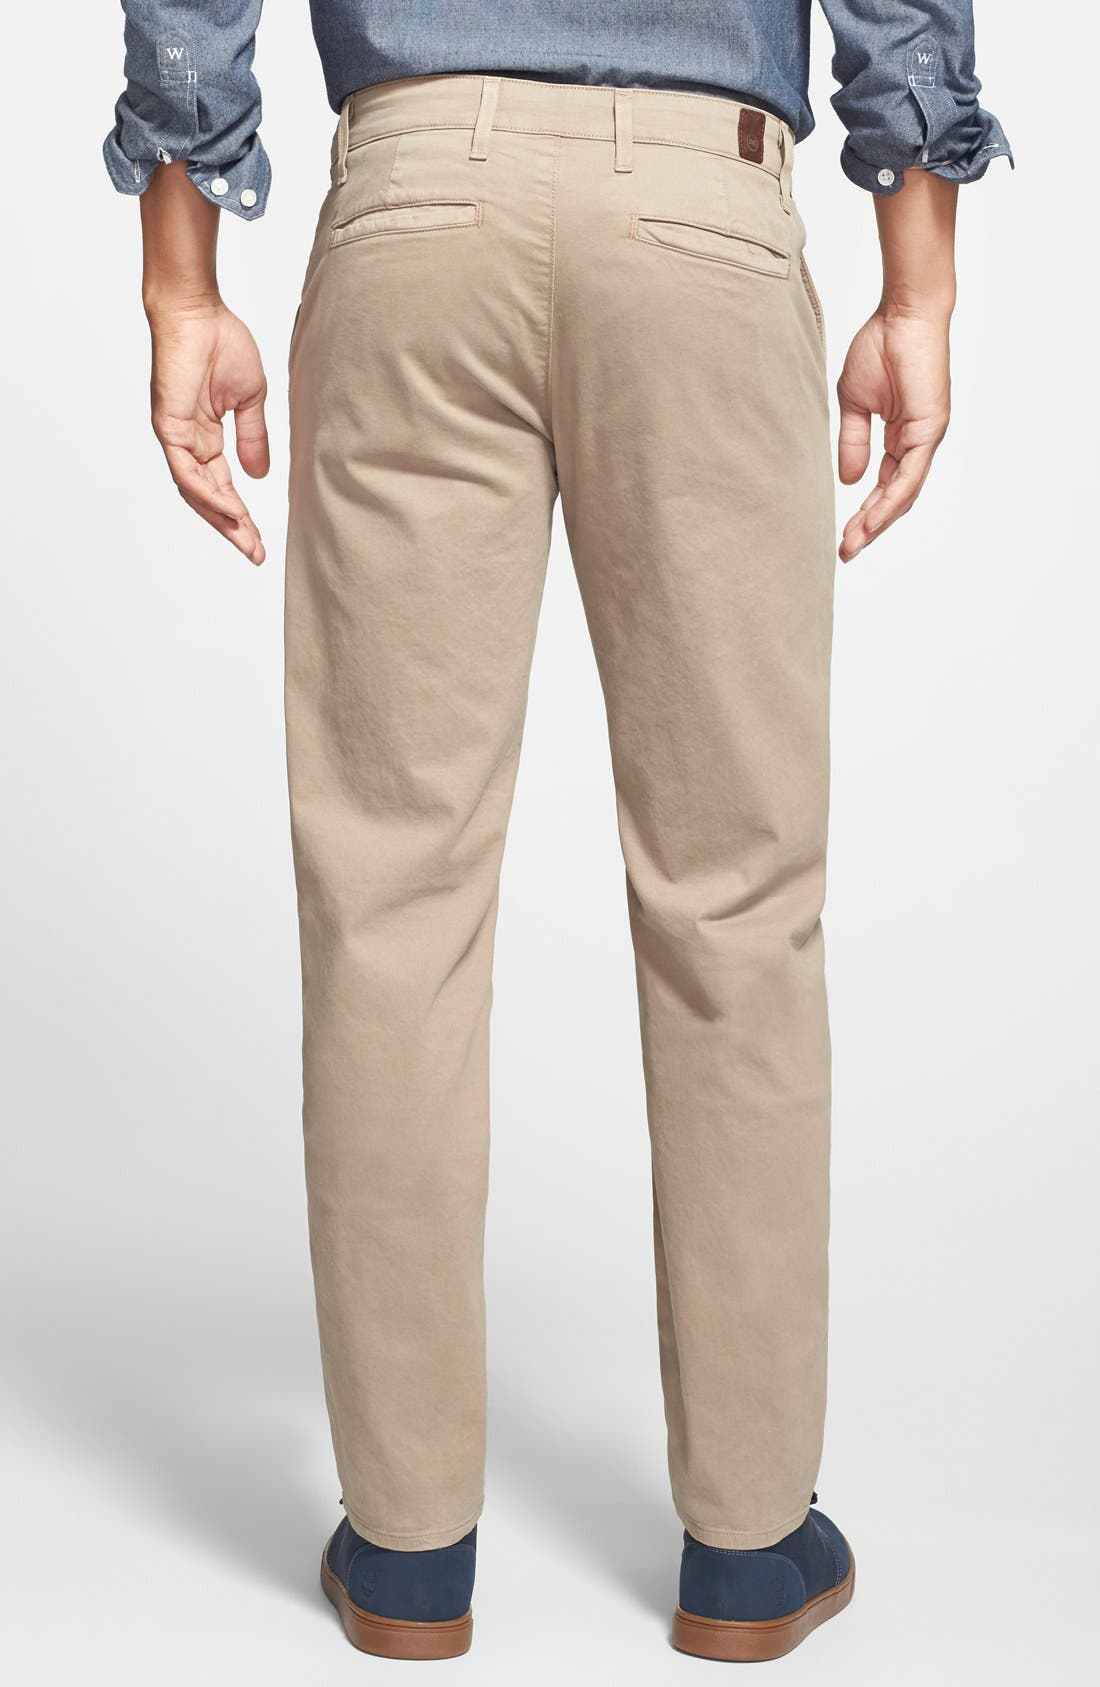 'The Lux' Tailored Straight Leg Chinos,                             Alternate thumbnail 25, color,